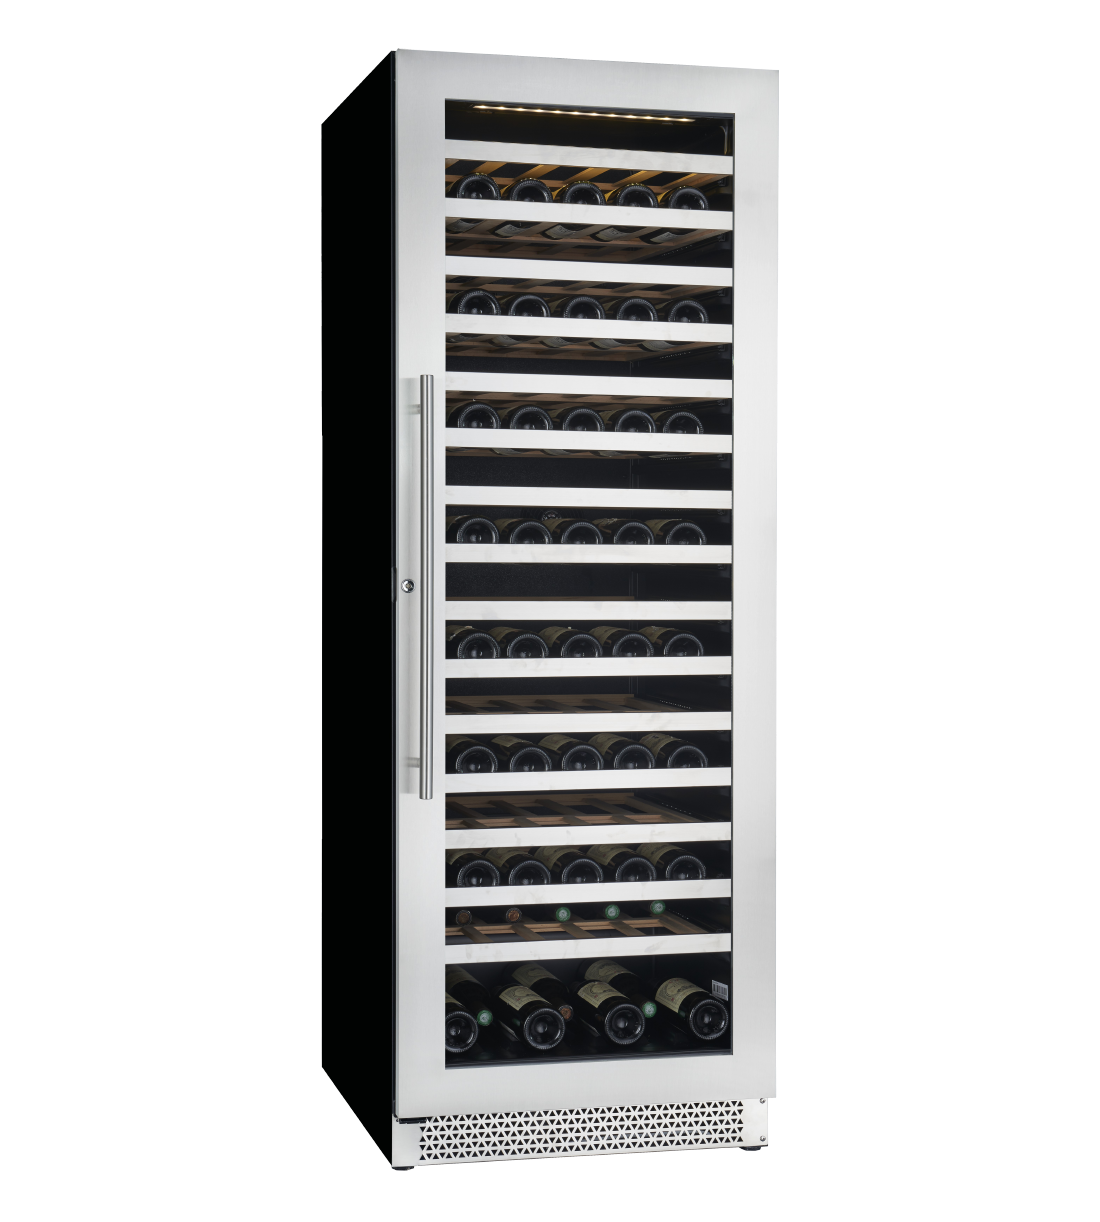 Cavavin Specialized refrigeration 68inch